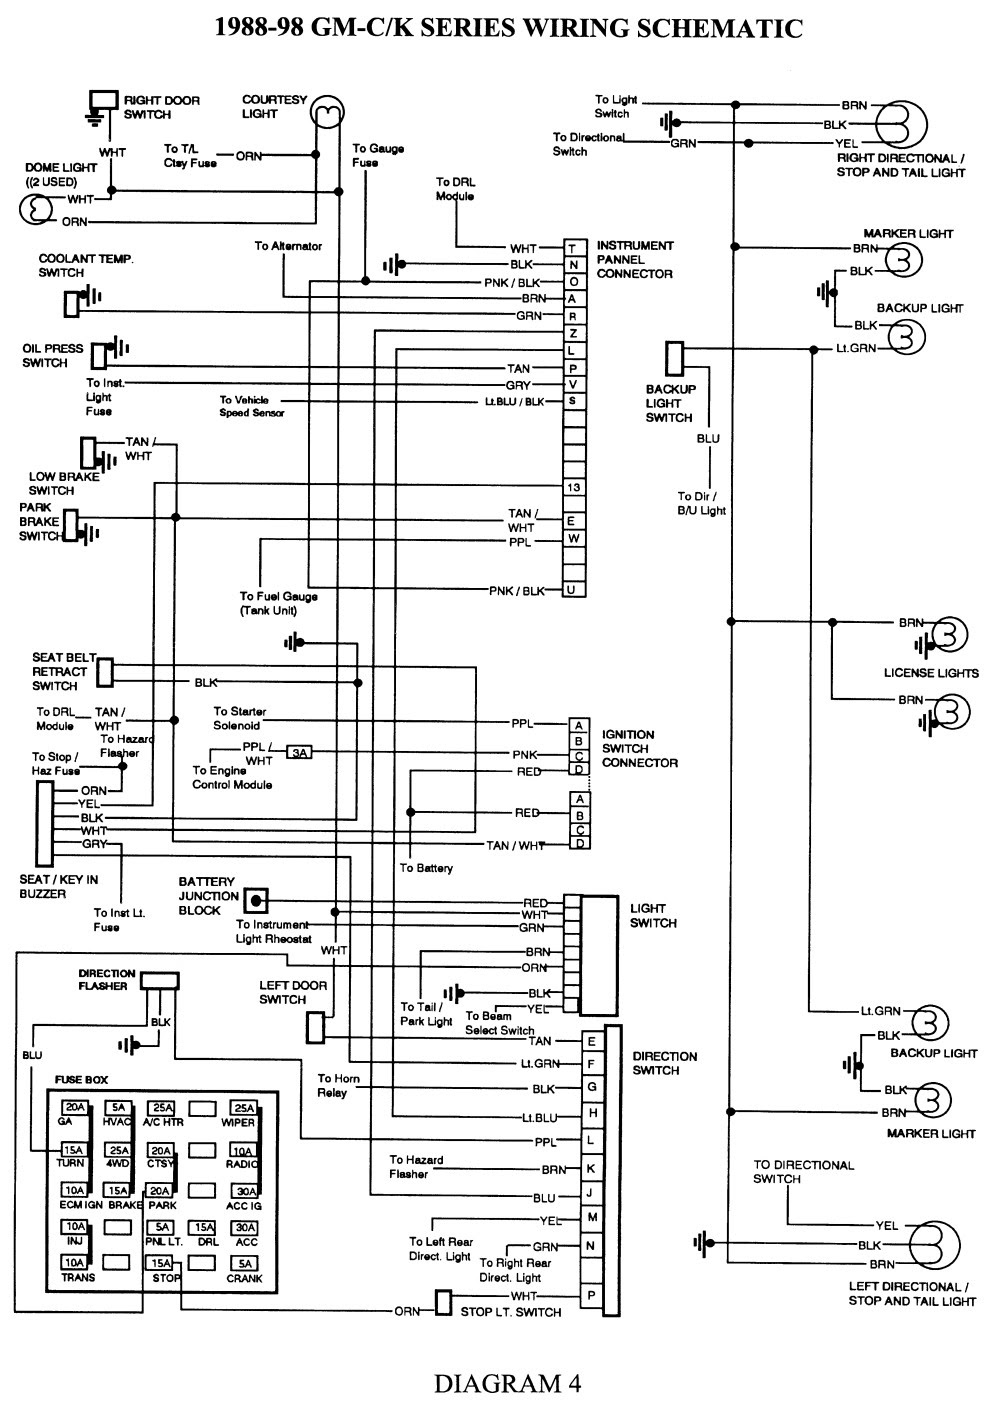 94 Dodge Ram Wiring Diagram Rear - Wiring Diagram NetworksWiring Diagram Networks - blogger